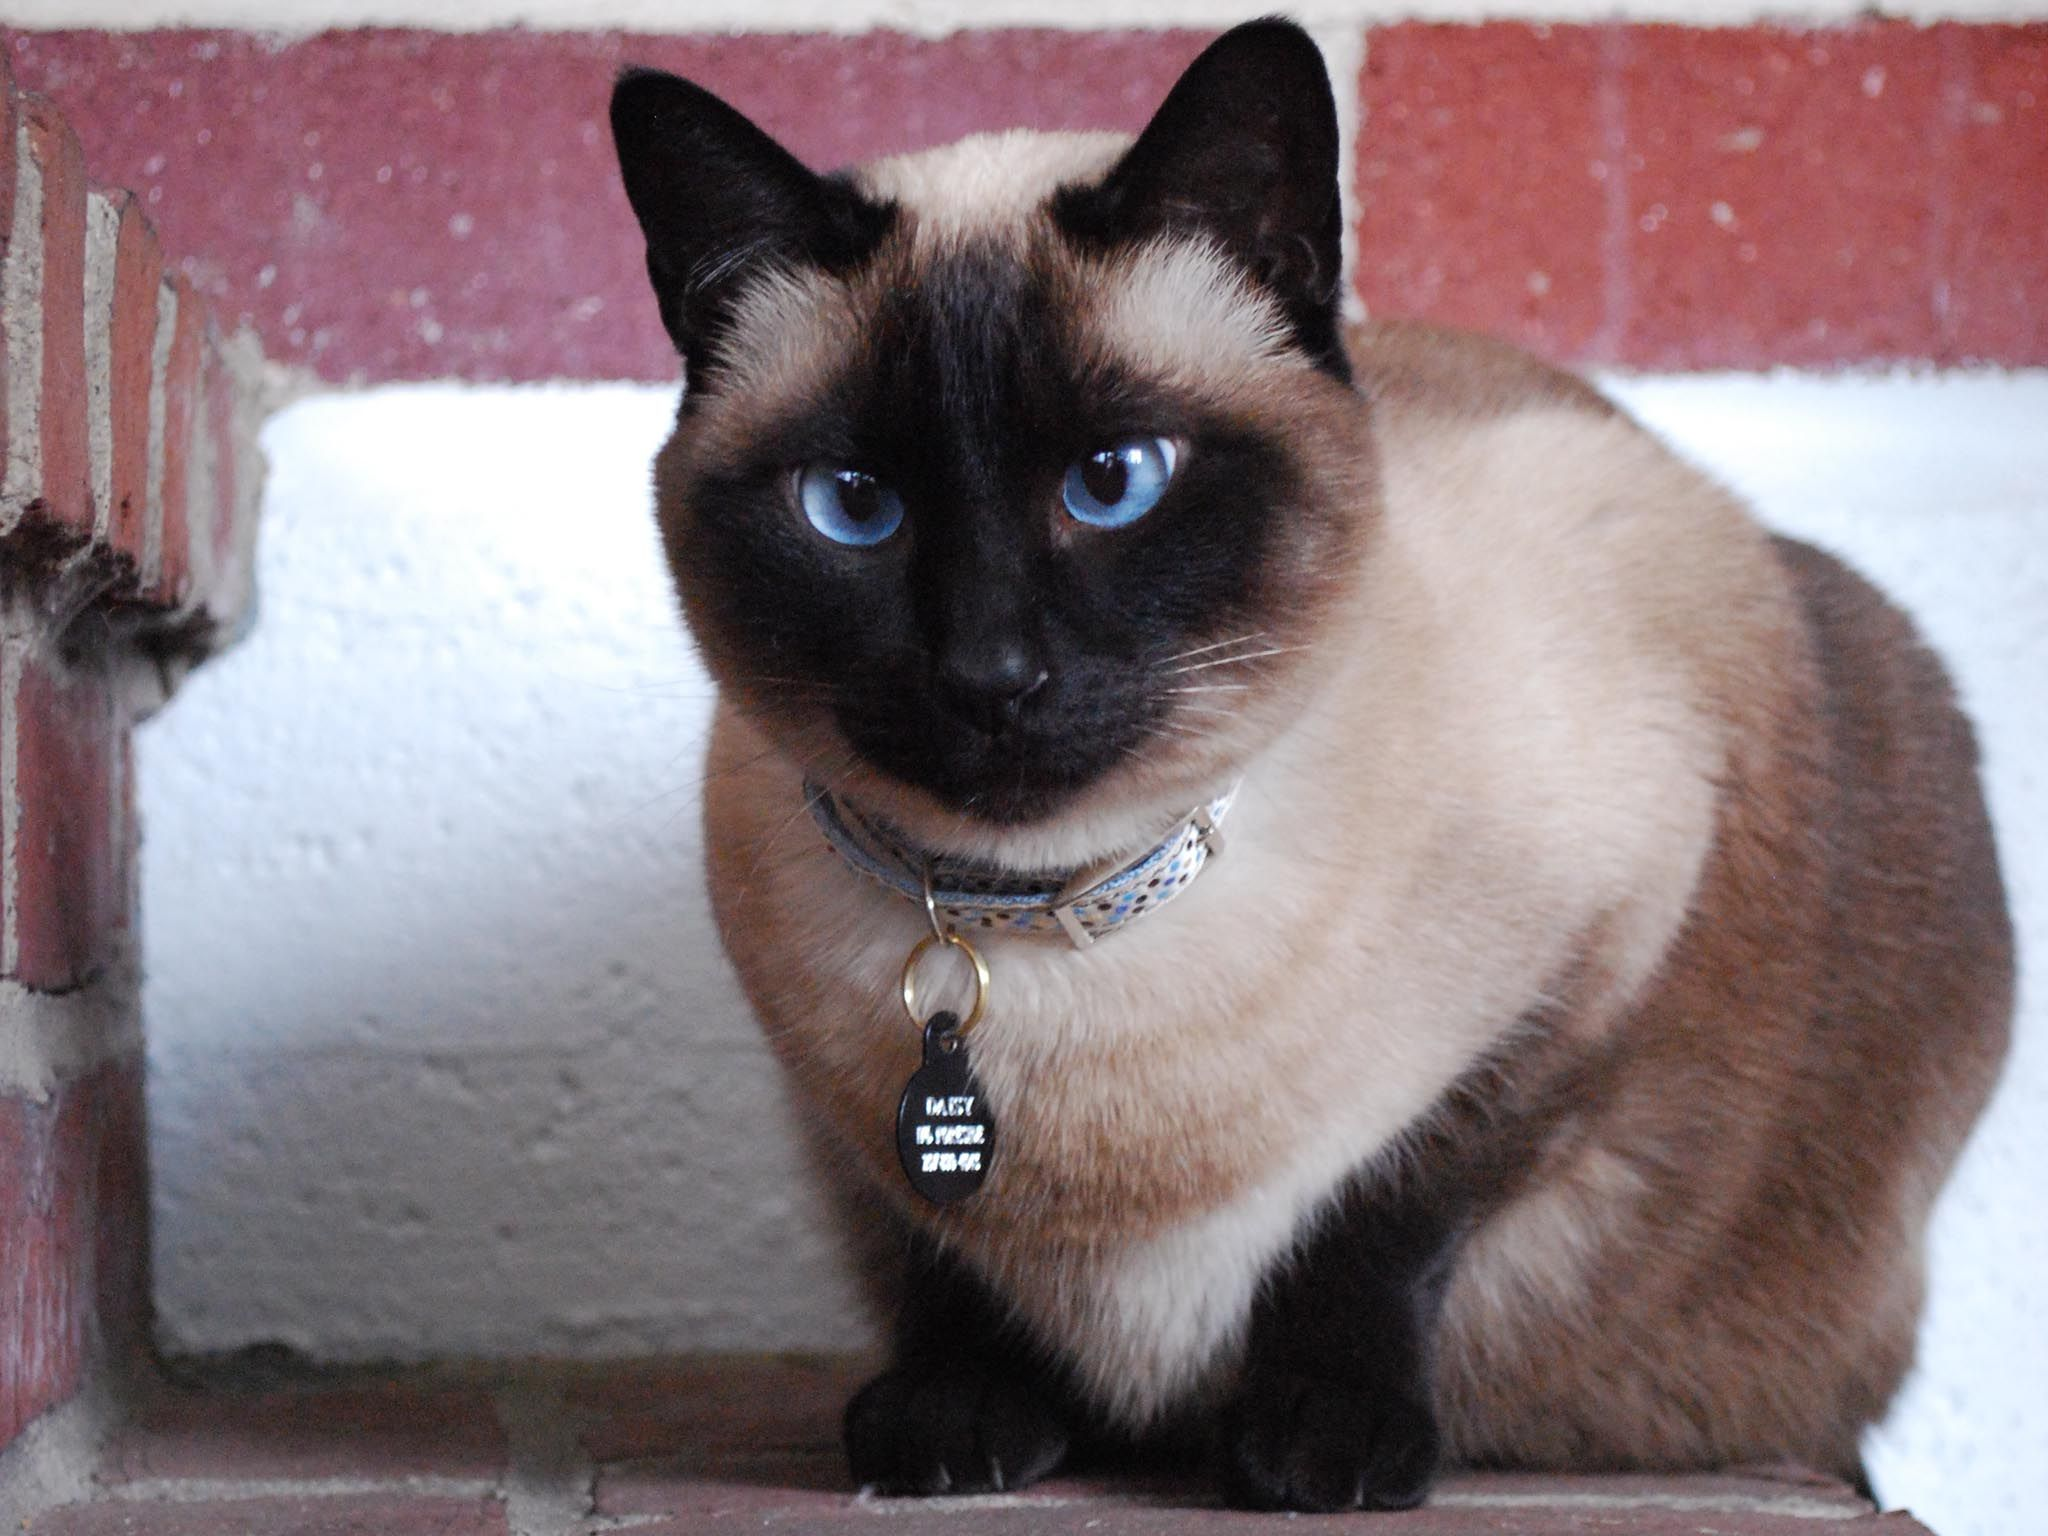 Seal Point Siamese Cats Siamese Cats Seal Point Funny Cat Wallpapers Pictures Images And Siamese Cats Siamese Cats Blue Point Cat Wallpaper